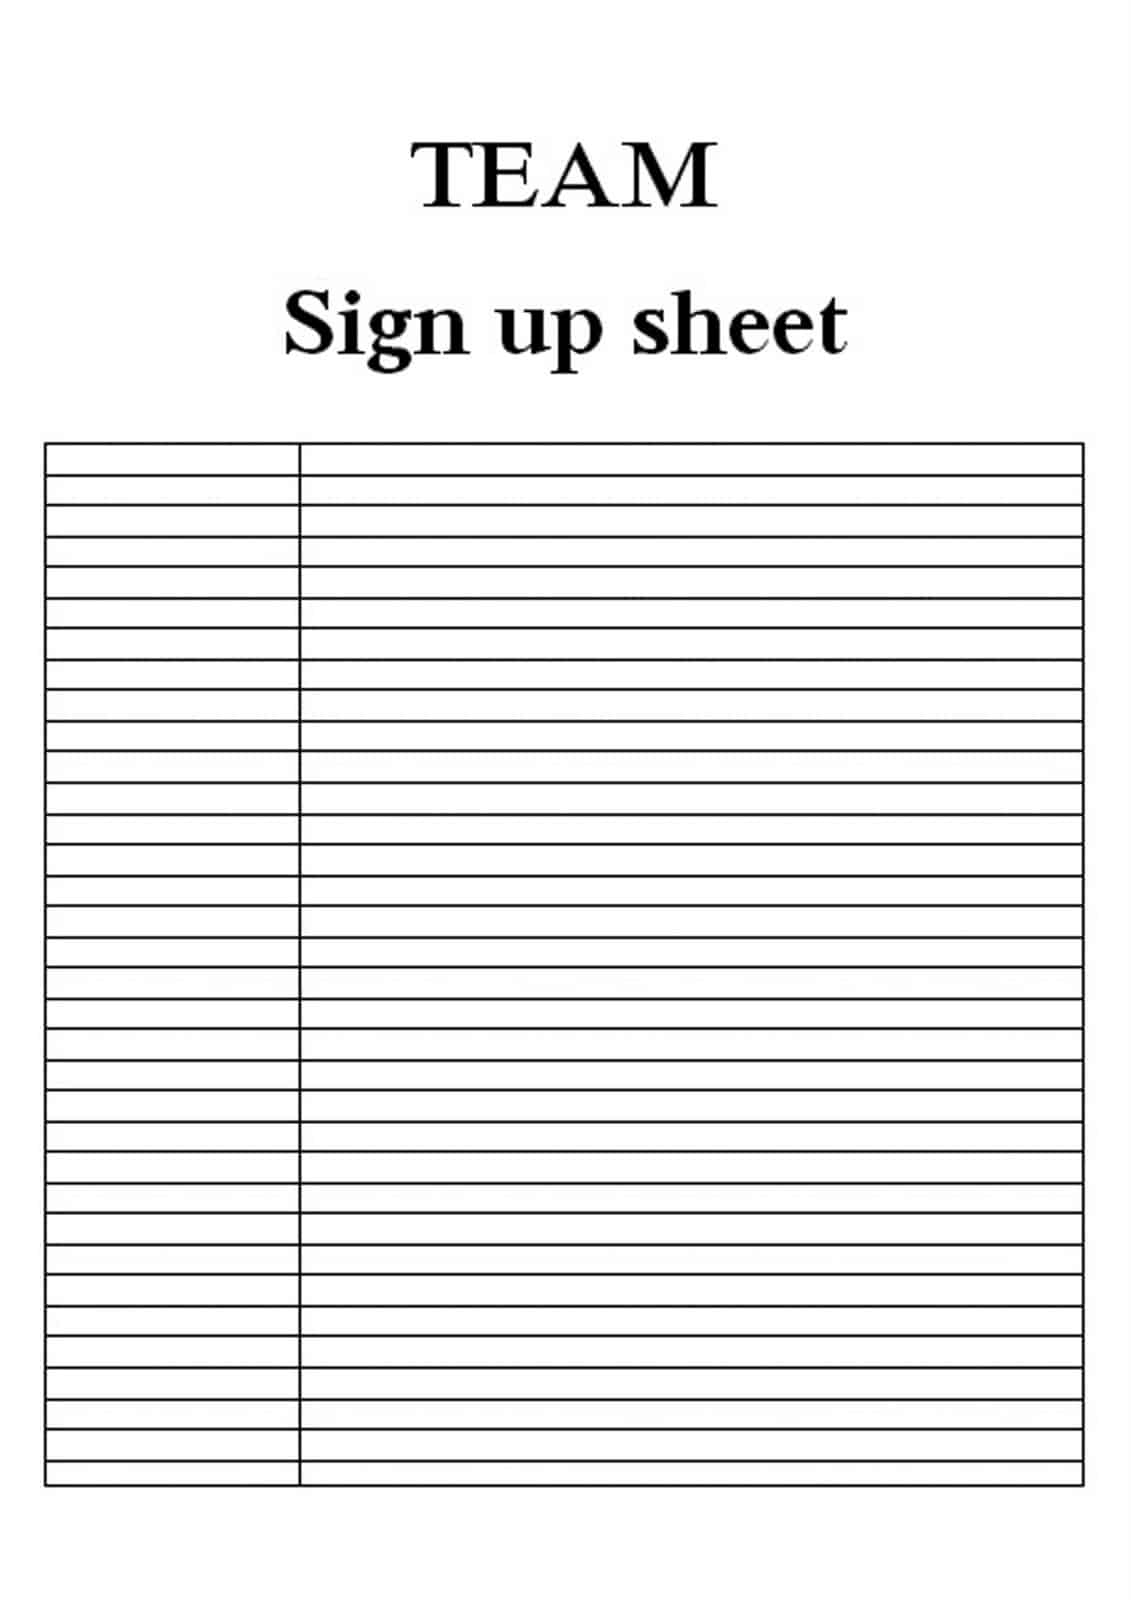 6+ Sign Up Sheet Word Templates - Website, Wordpress, Blog